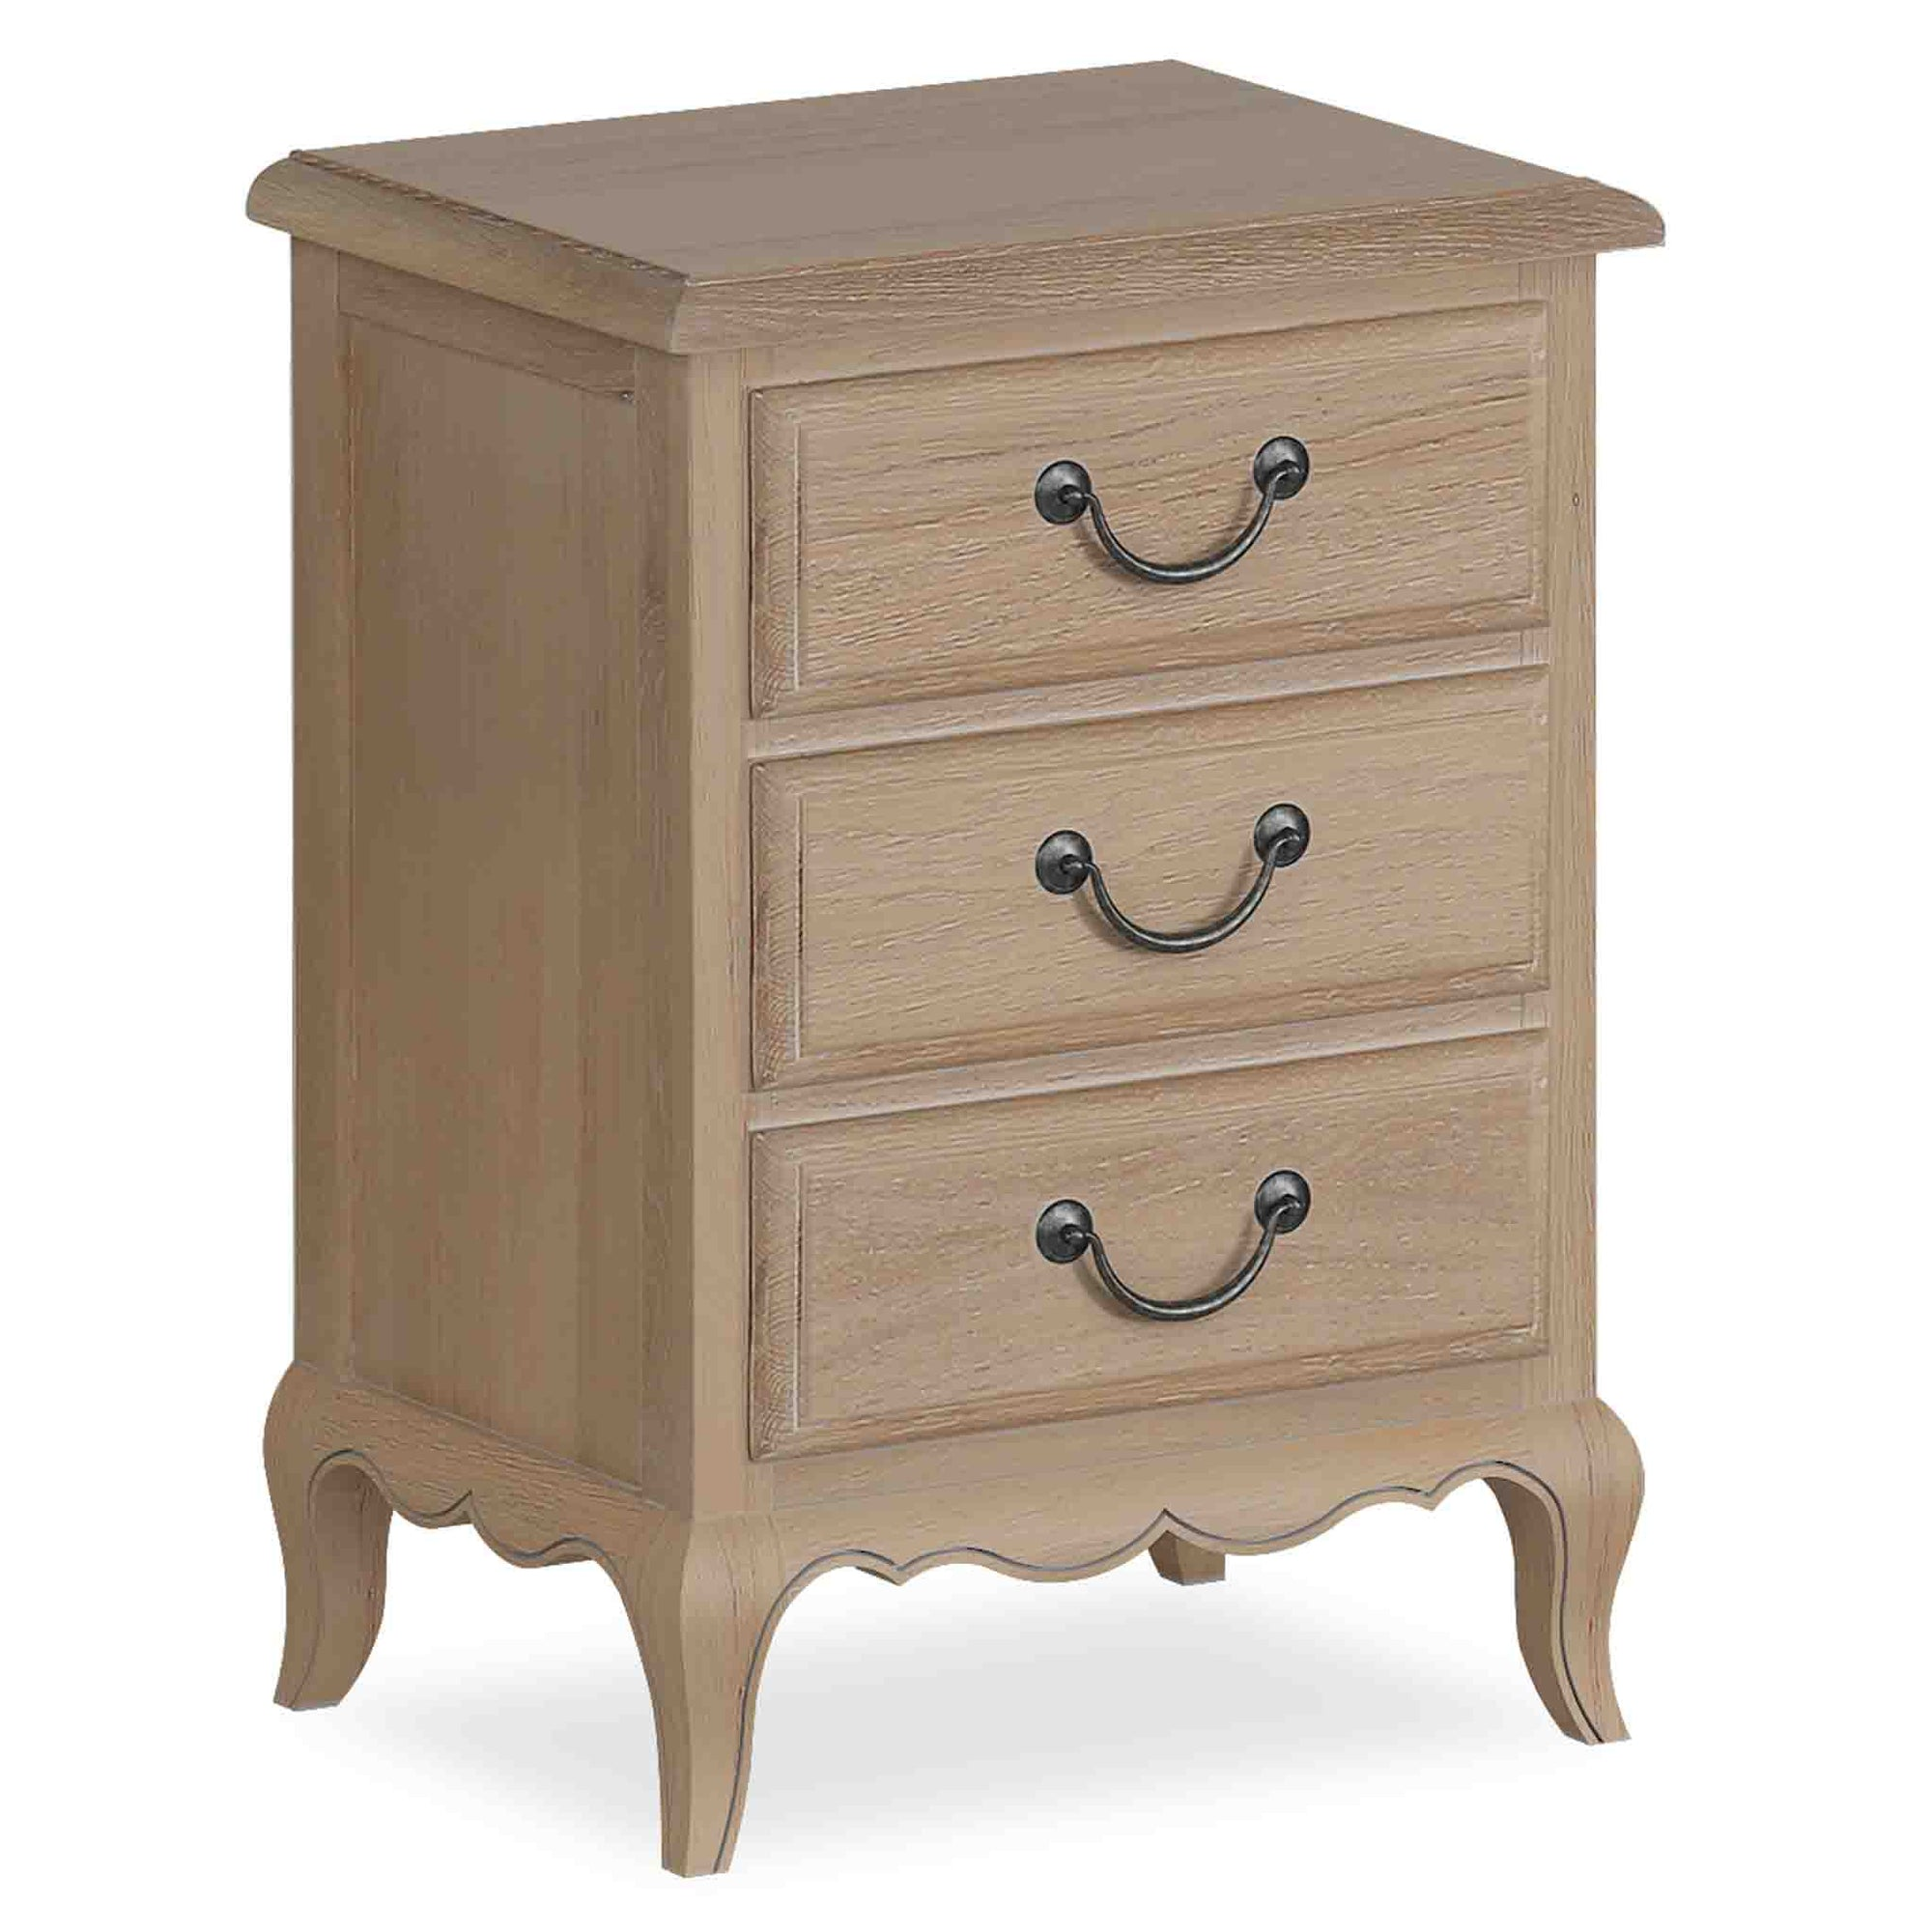 Harrogate Oak French Style Bedside Table from Roseland Furniture